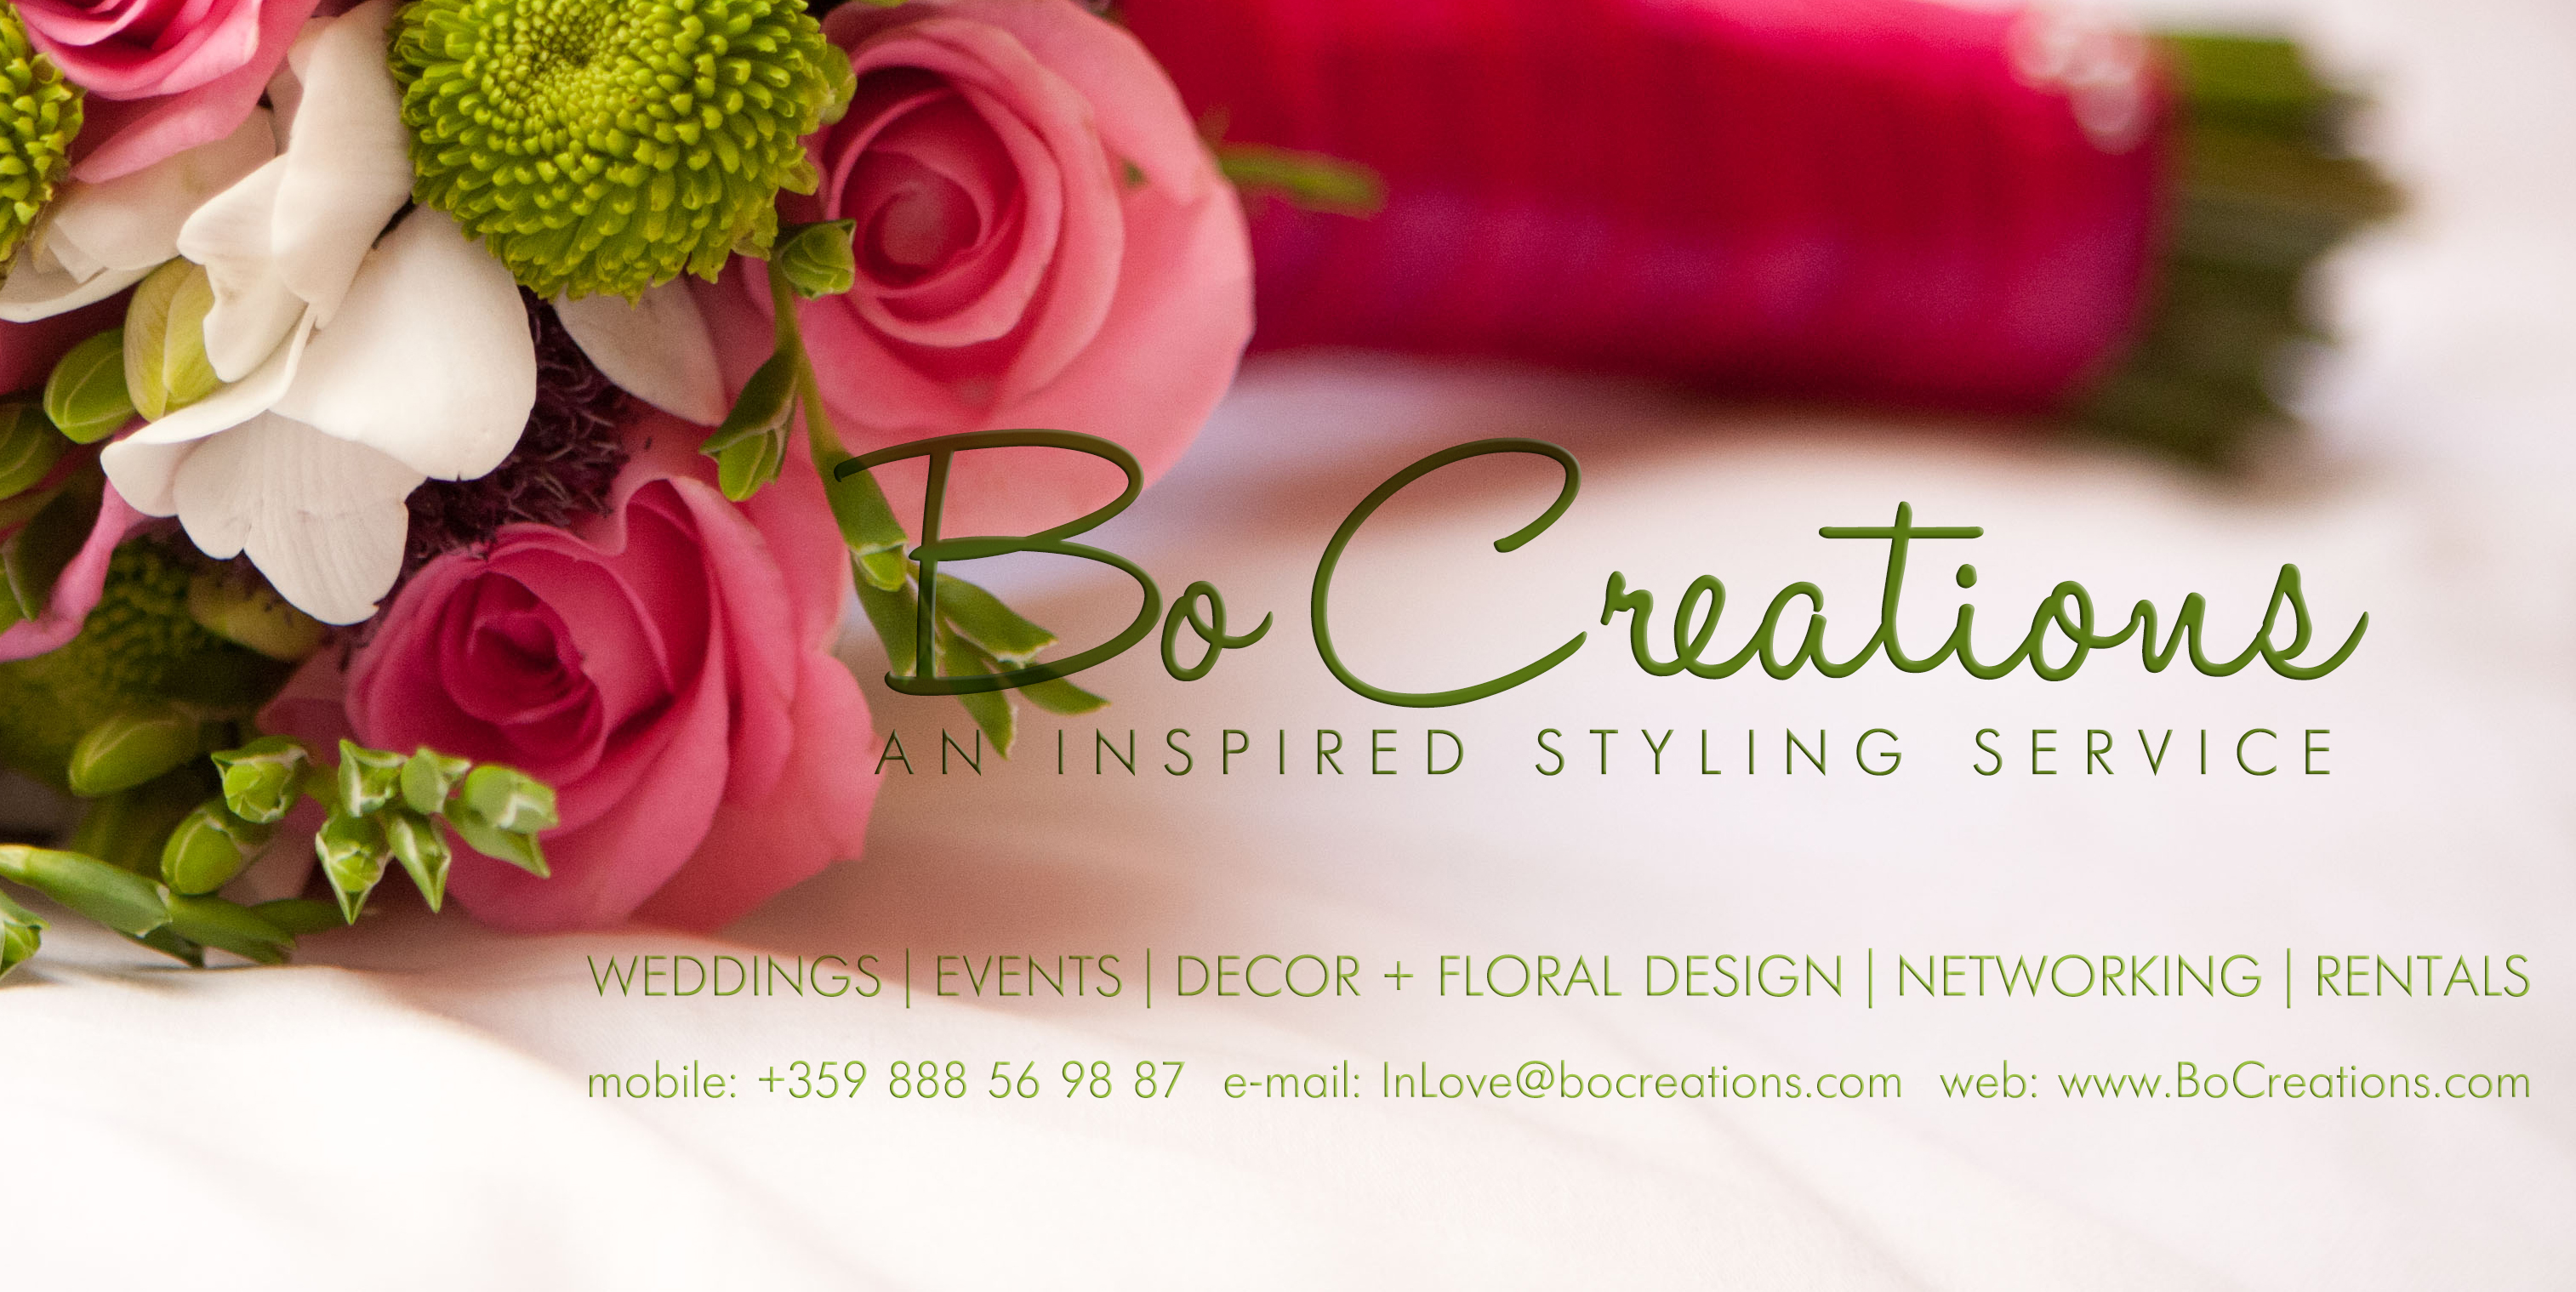 BoCreations FB head logo services contacts